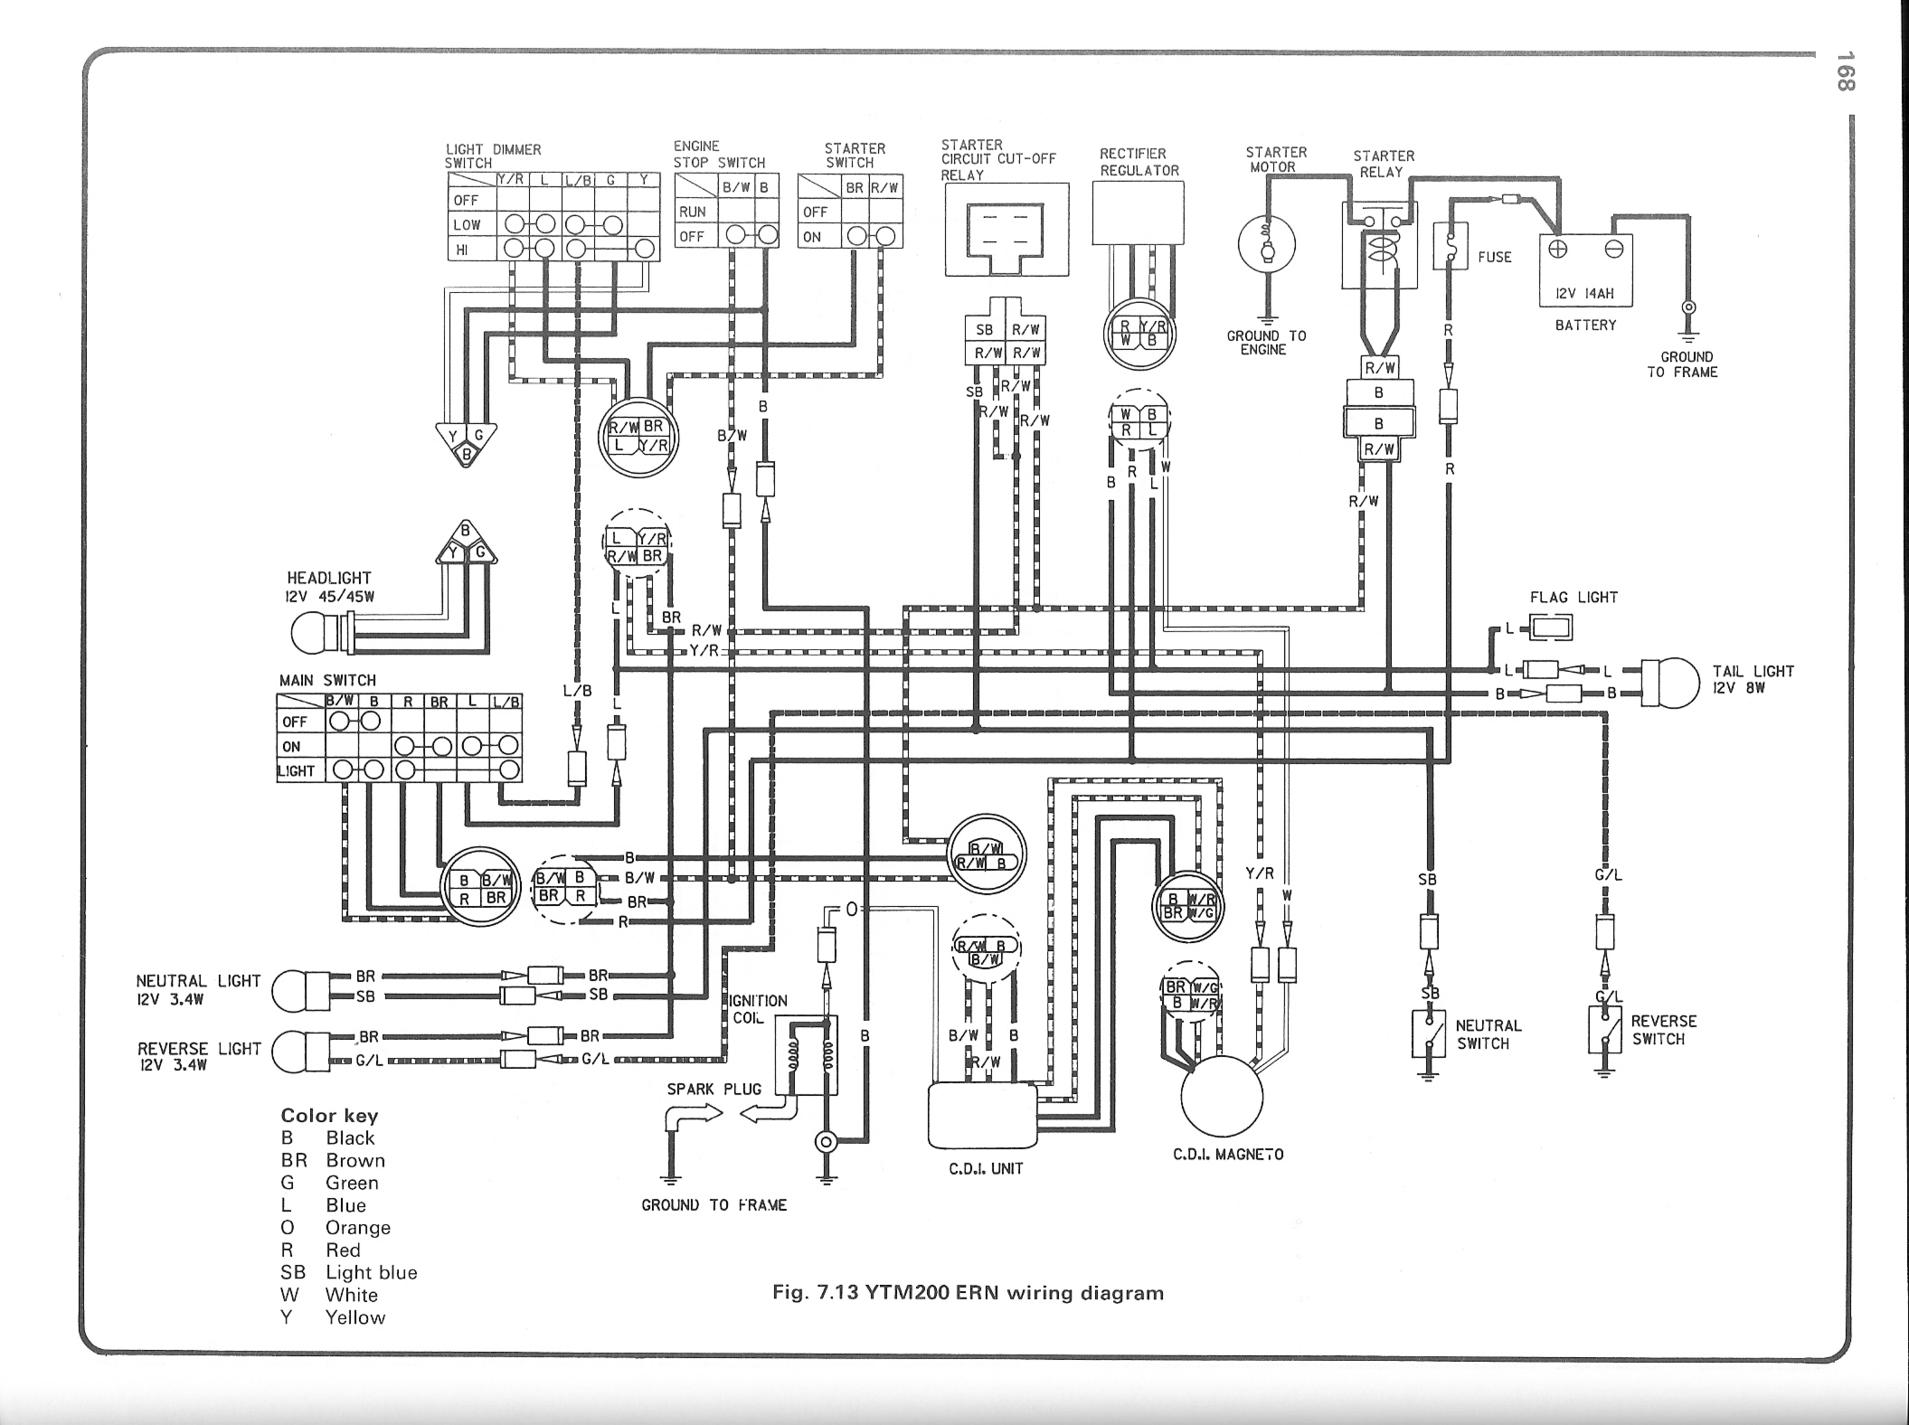 wiring diagram 2001 yamaha kodiak    yamaha       kodiak    400    wiring       diagram    auto electrical    wiring        yamaha       kodiak    400    wiring       diagram    auto electrical    wiring